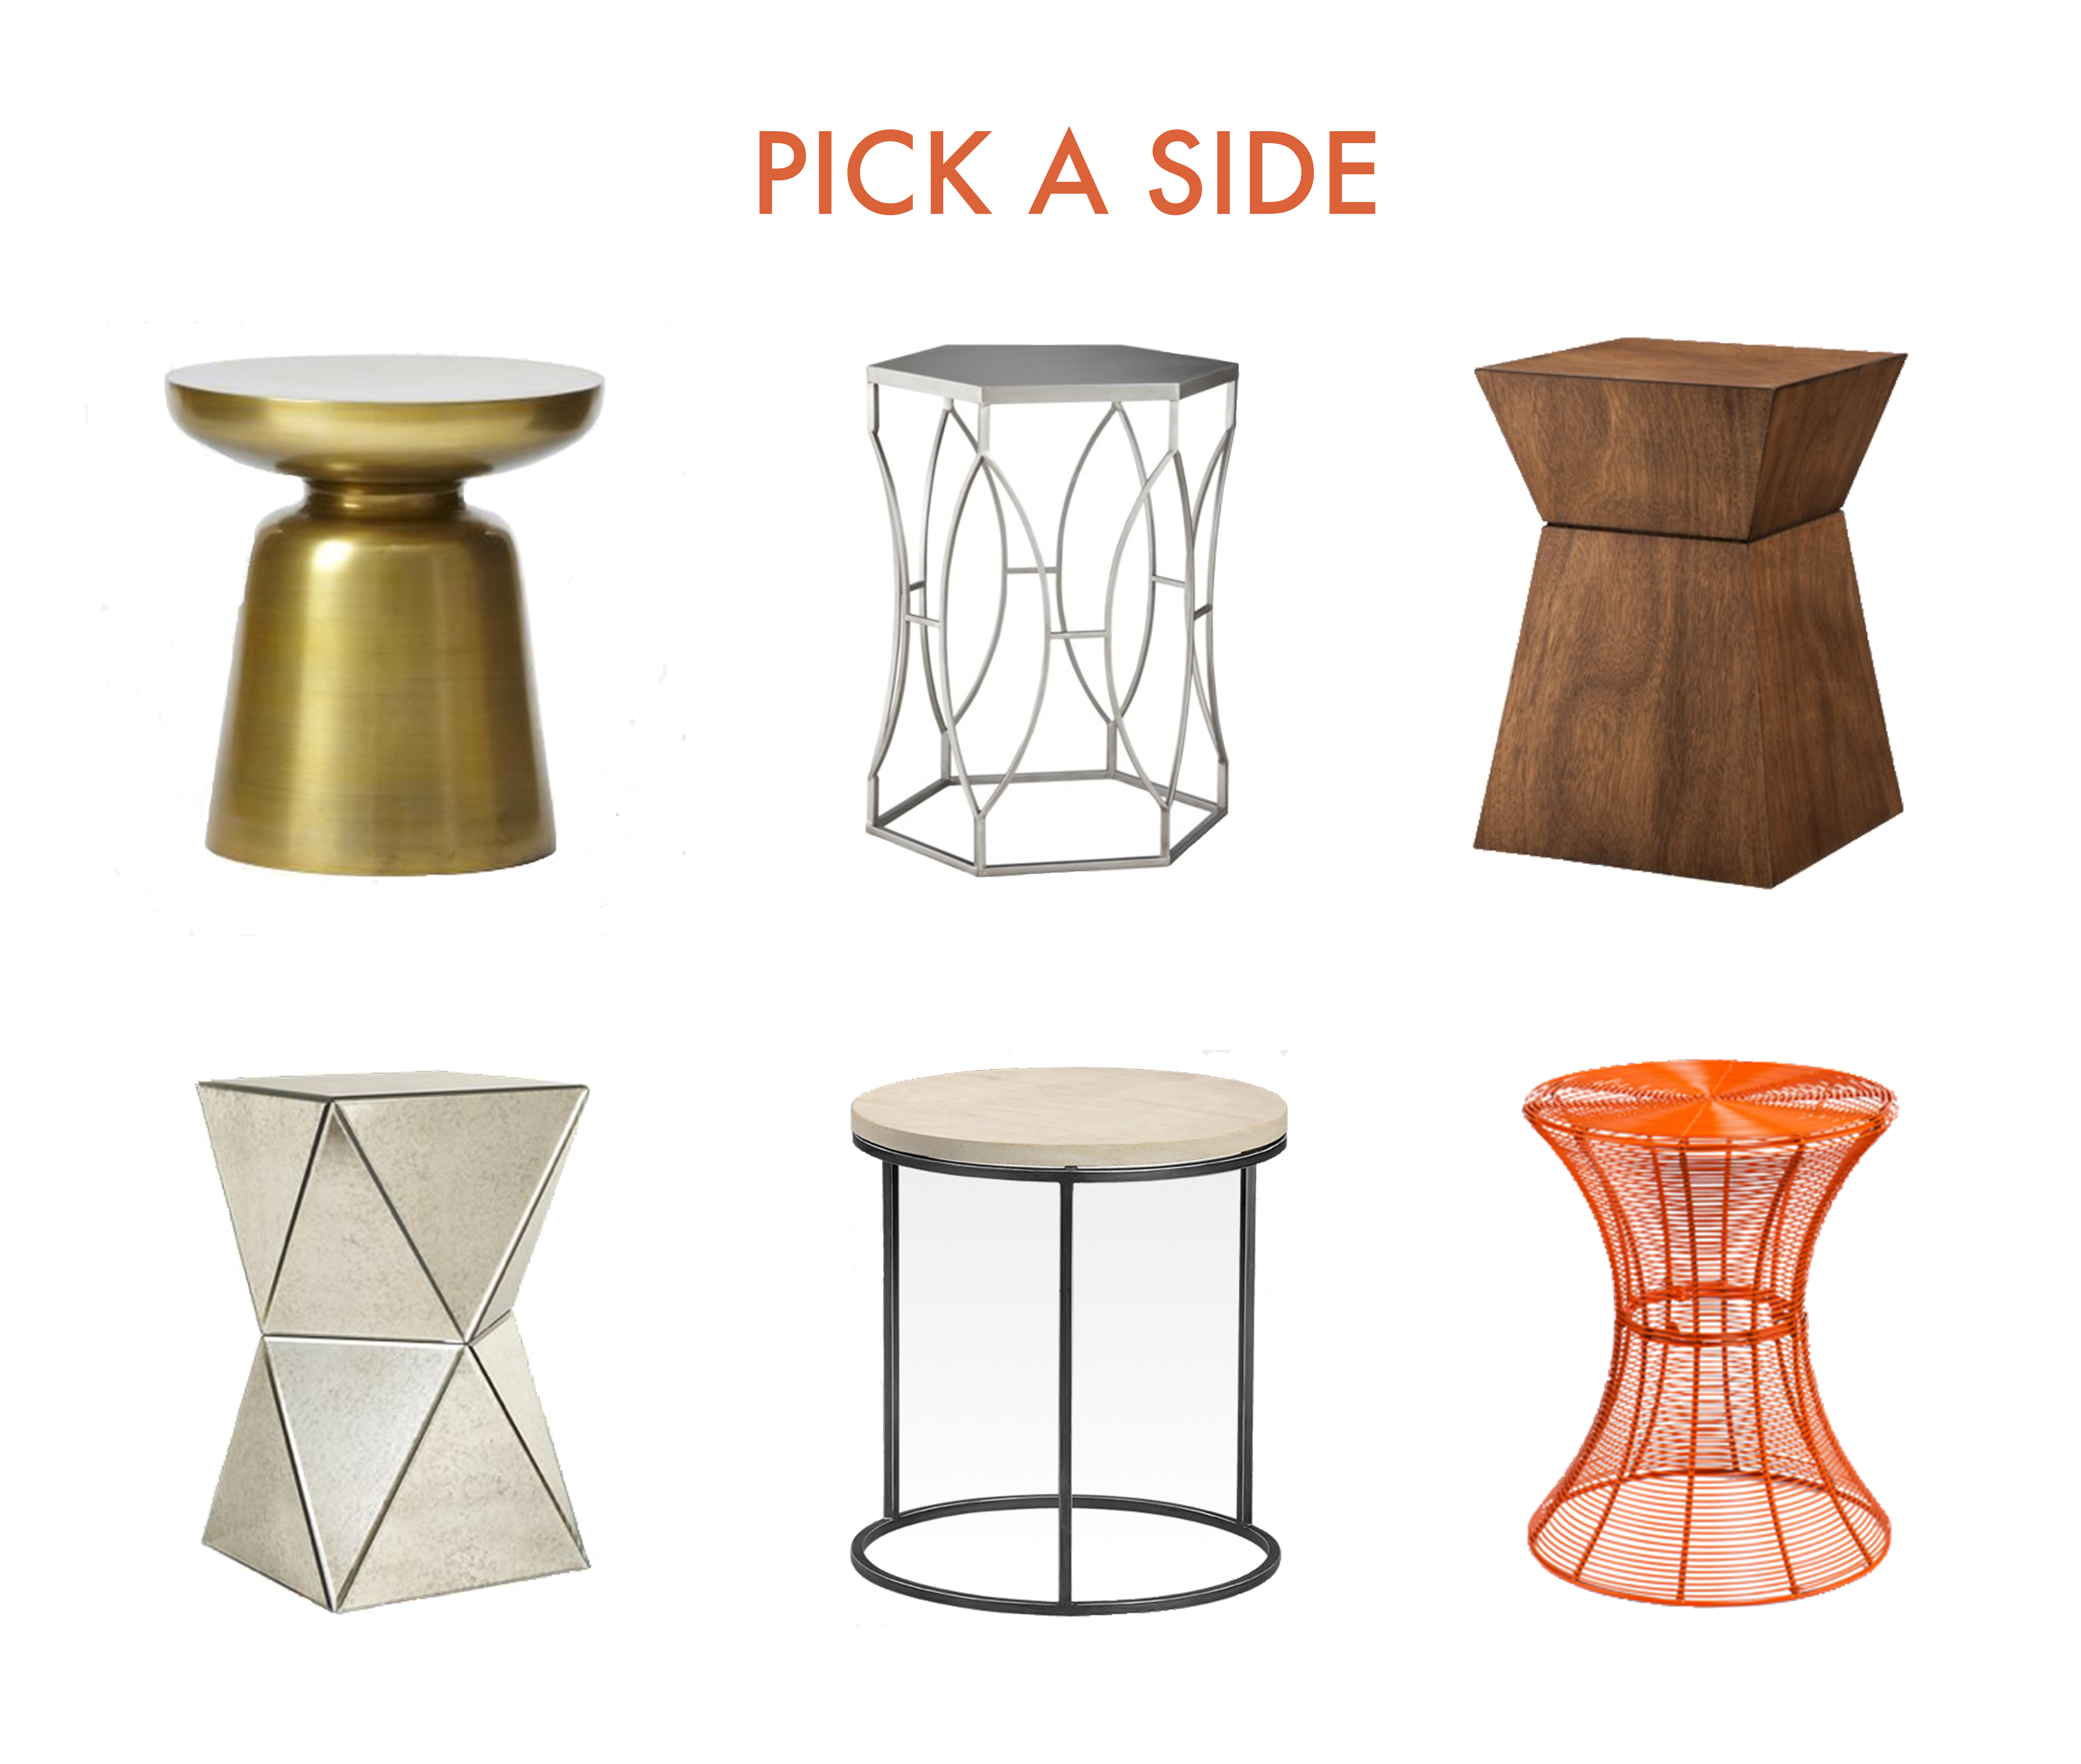 side table for every occasion scout and arrow sidetables threshold accent home goods mirrors target end tables white entry room door cover cloth mats grey outdoor coffee small